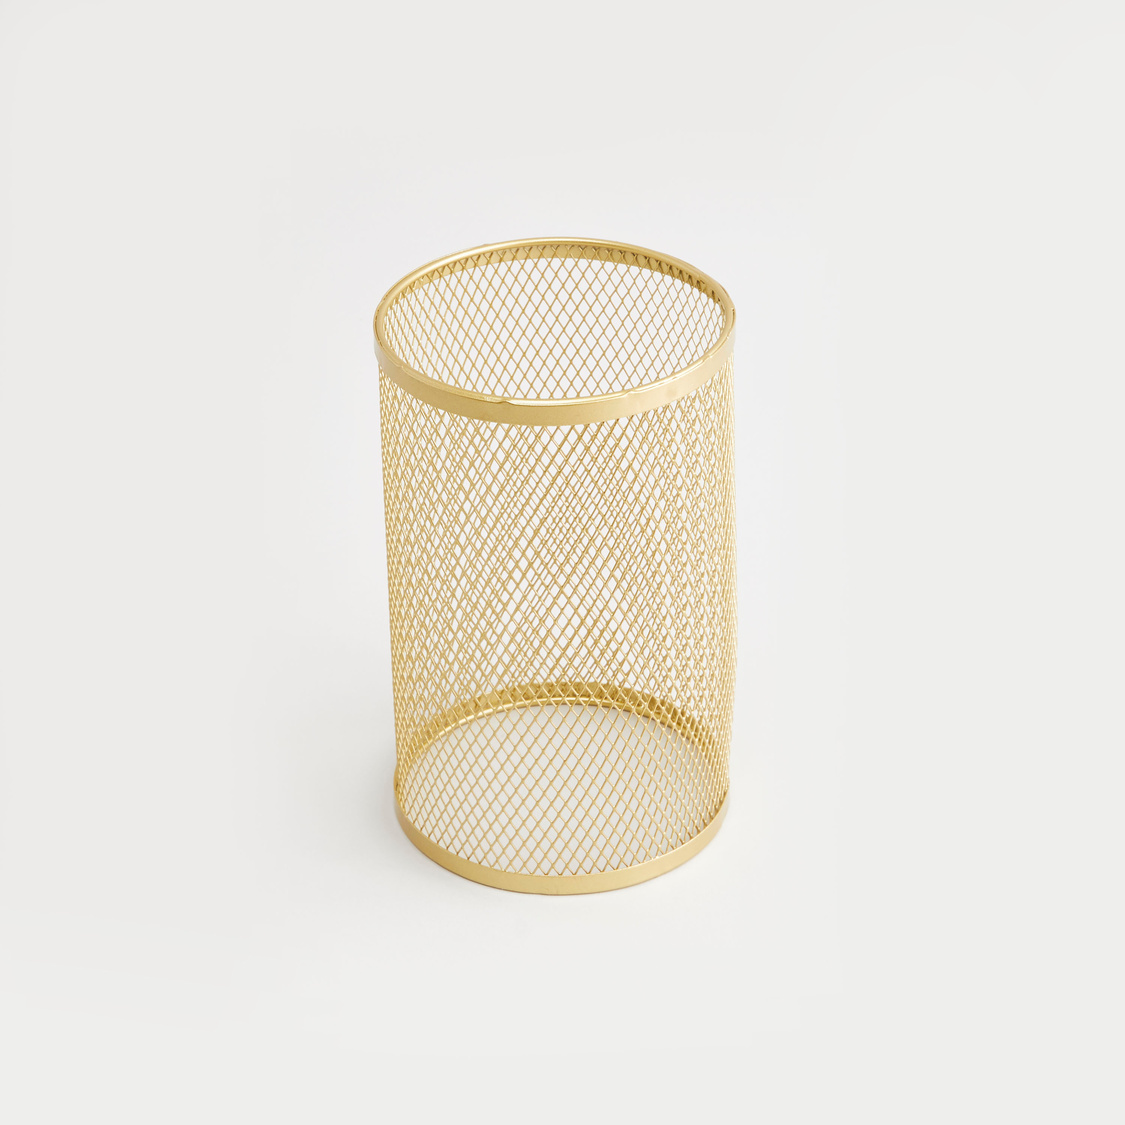 Cylindrical Candle Holder - 11x11x21 cms